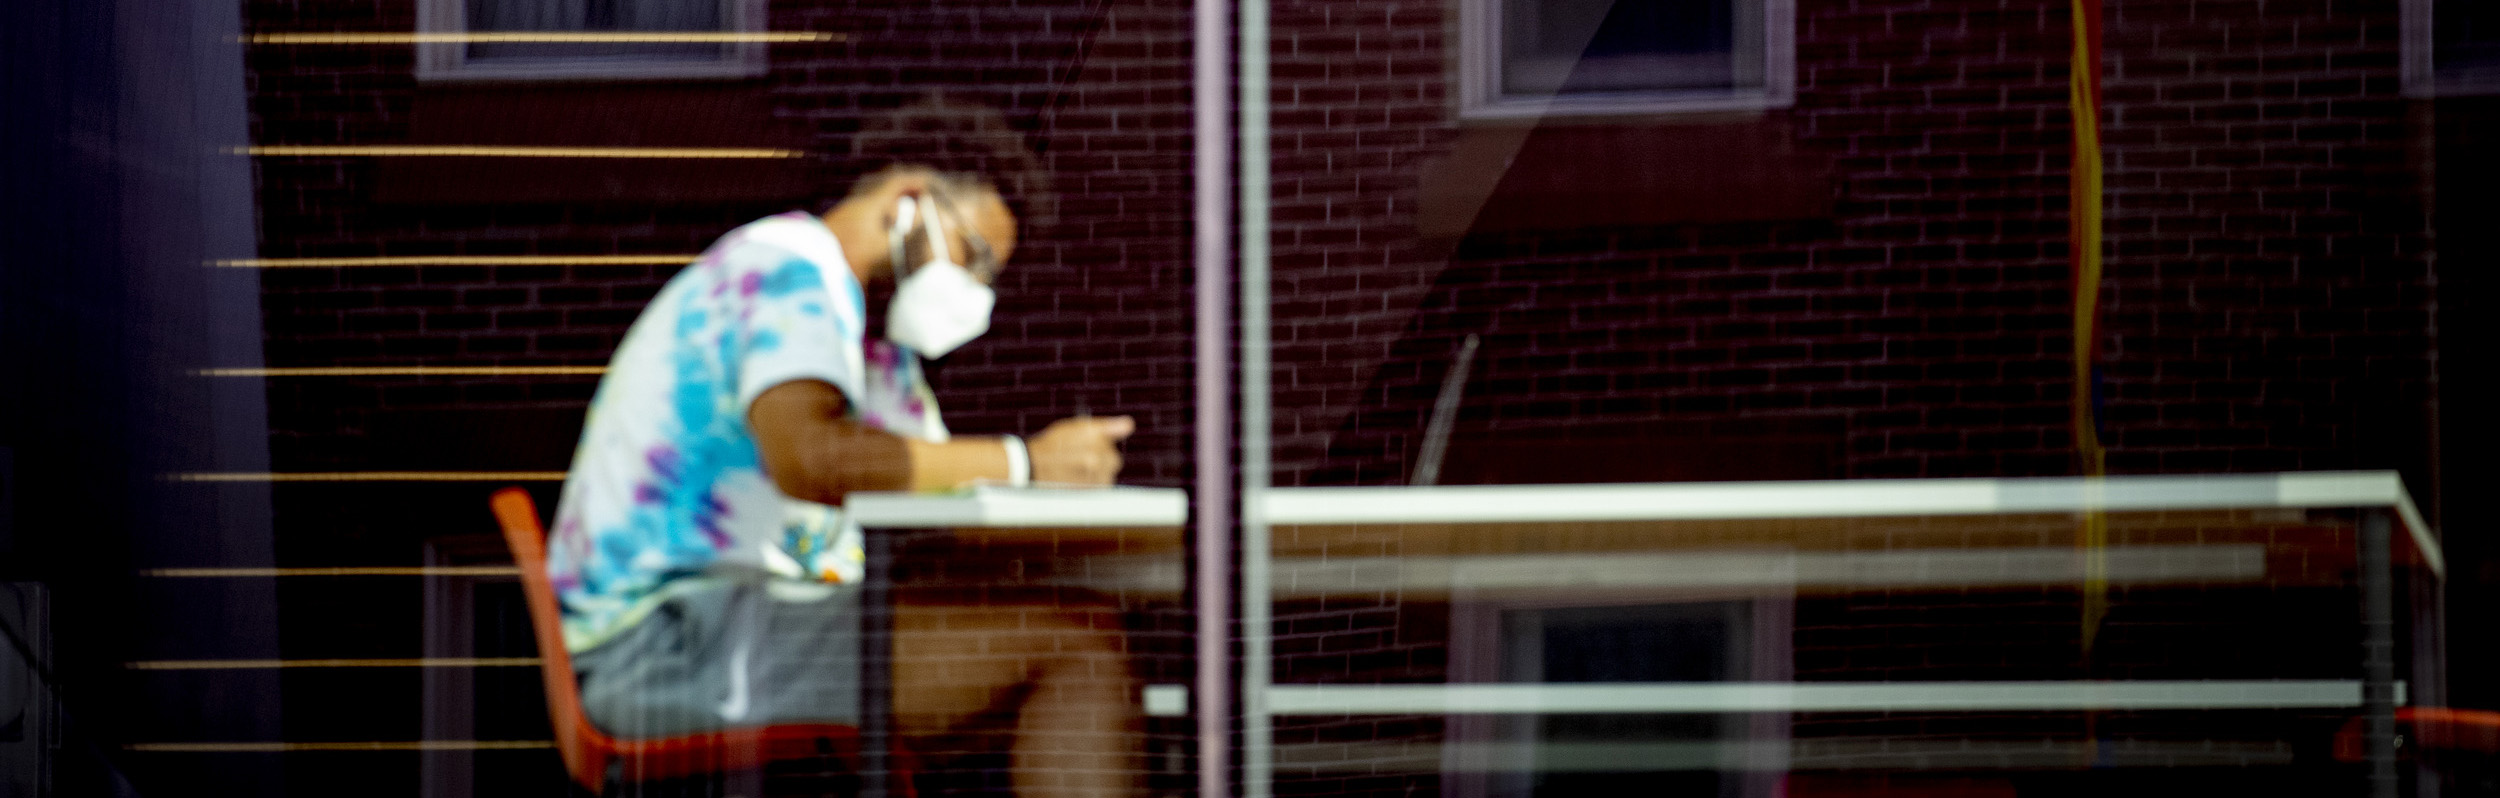 student on campus with mask